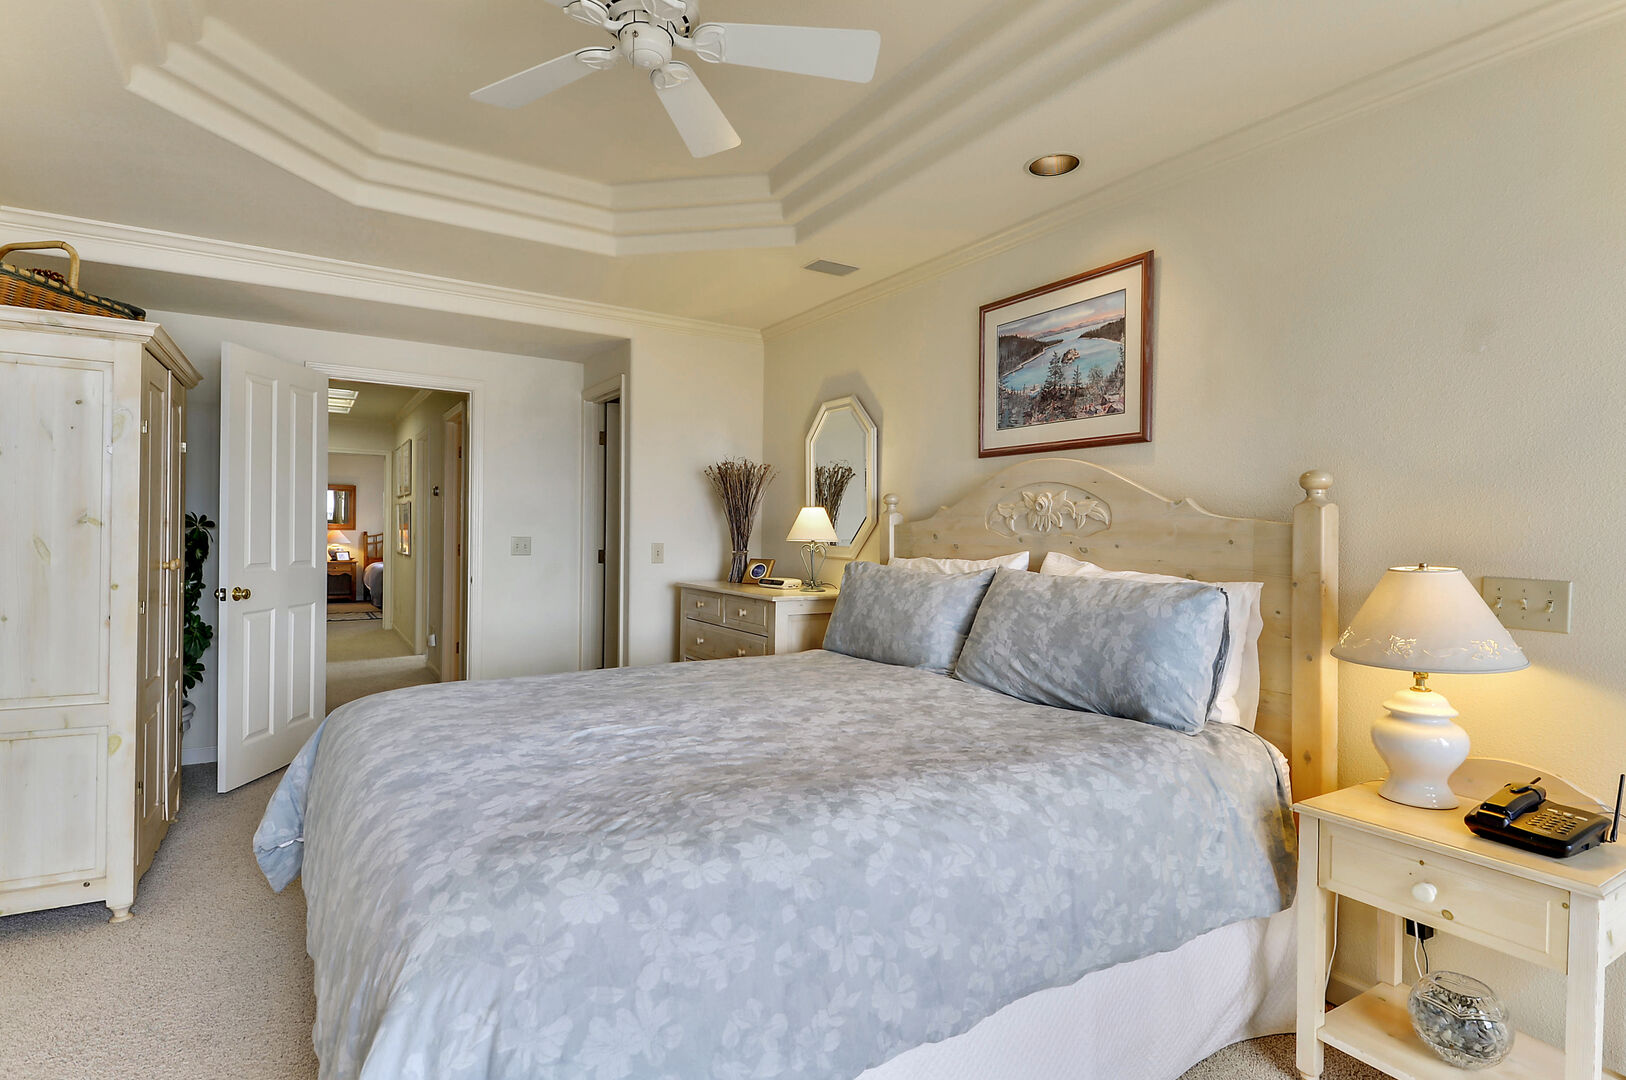 Large Bed, Drawer Dresser, Mirror, Lamp, Nightstand, Wardrobe, and Ceiling Fan.